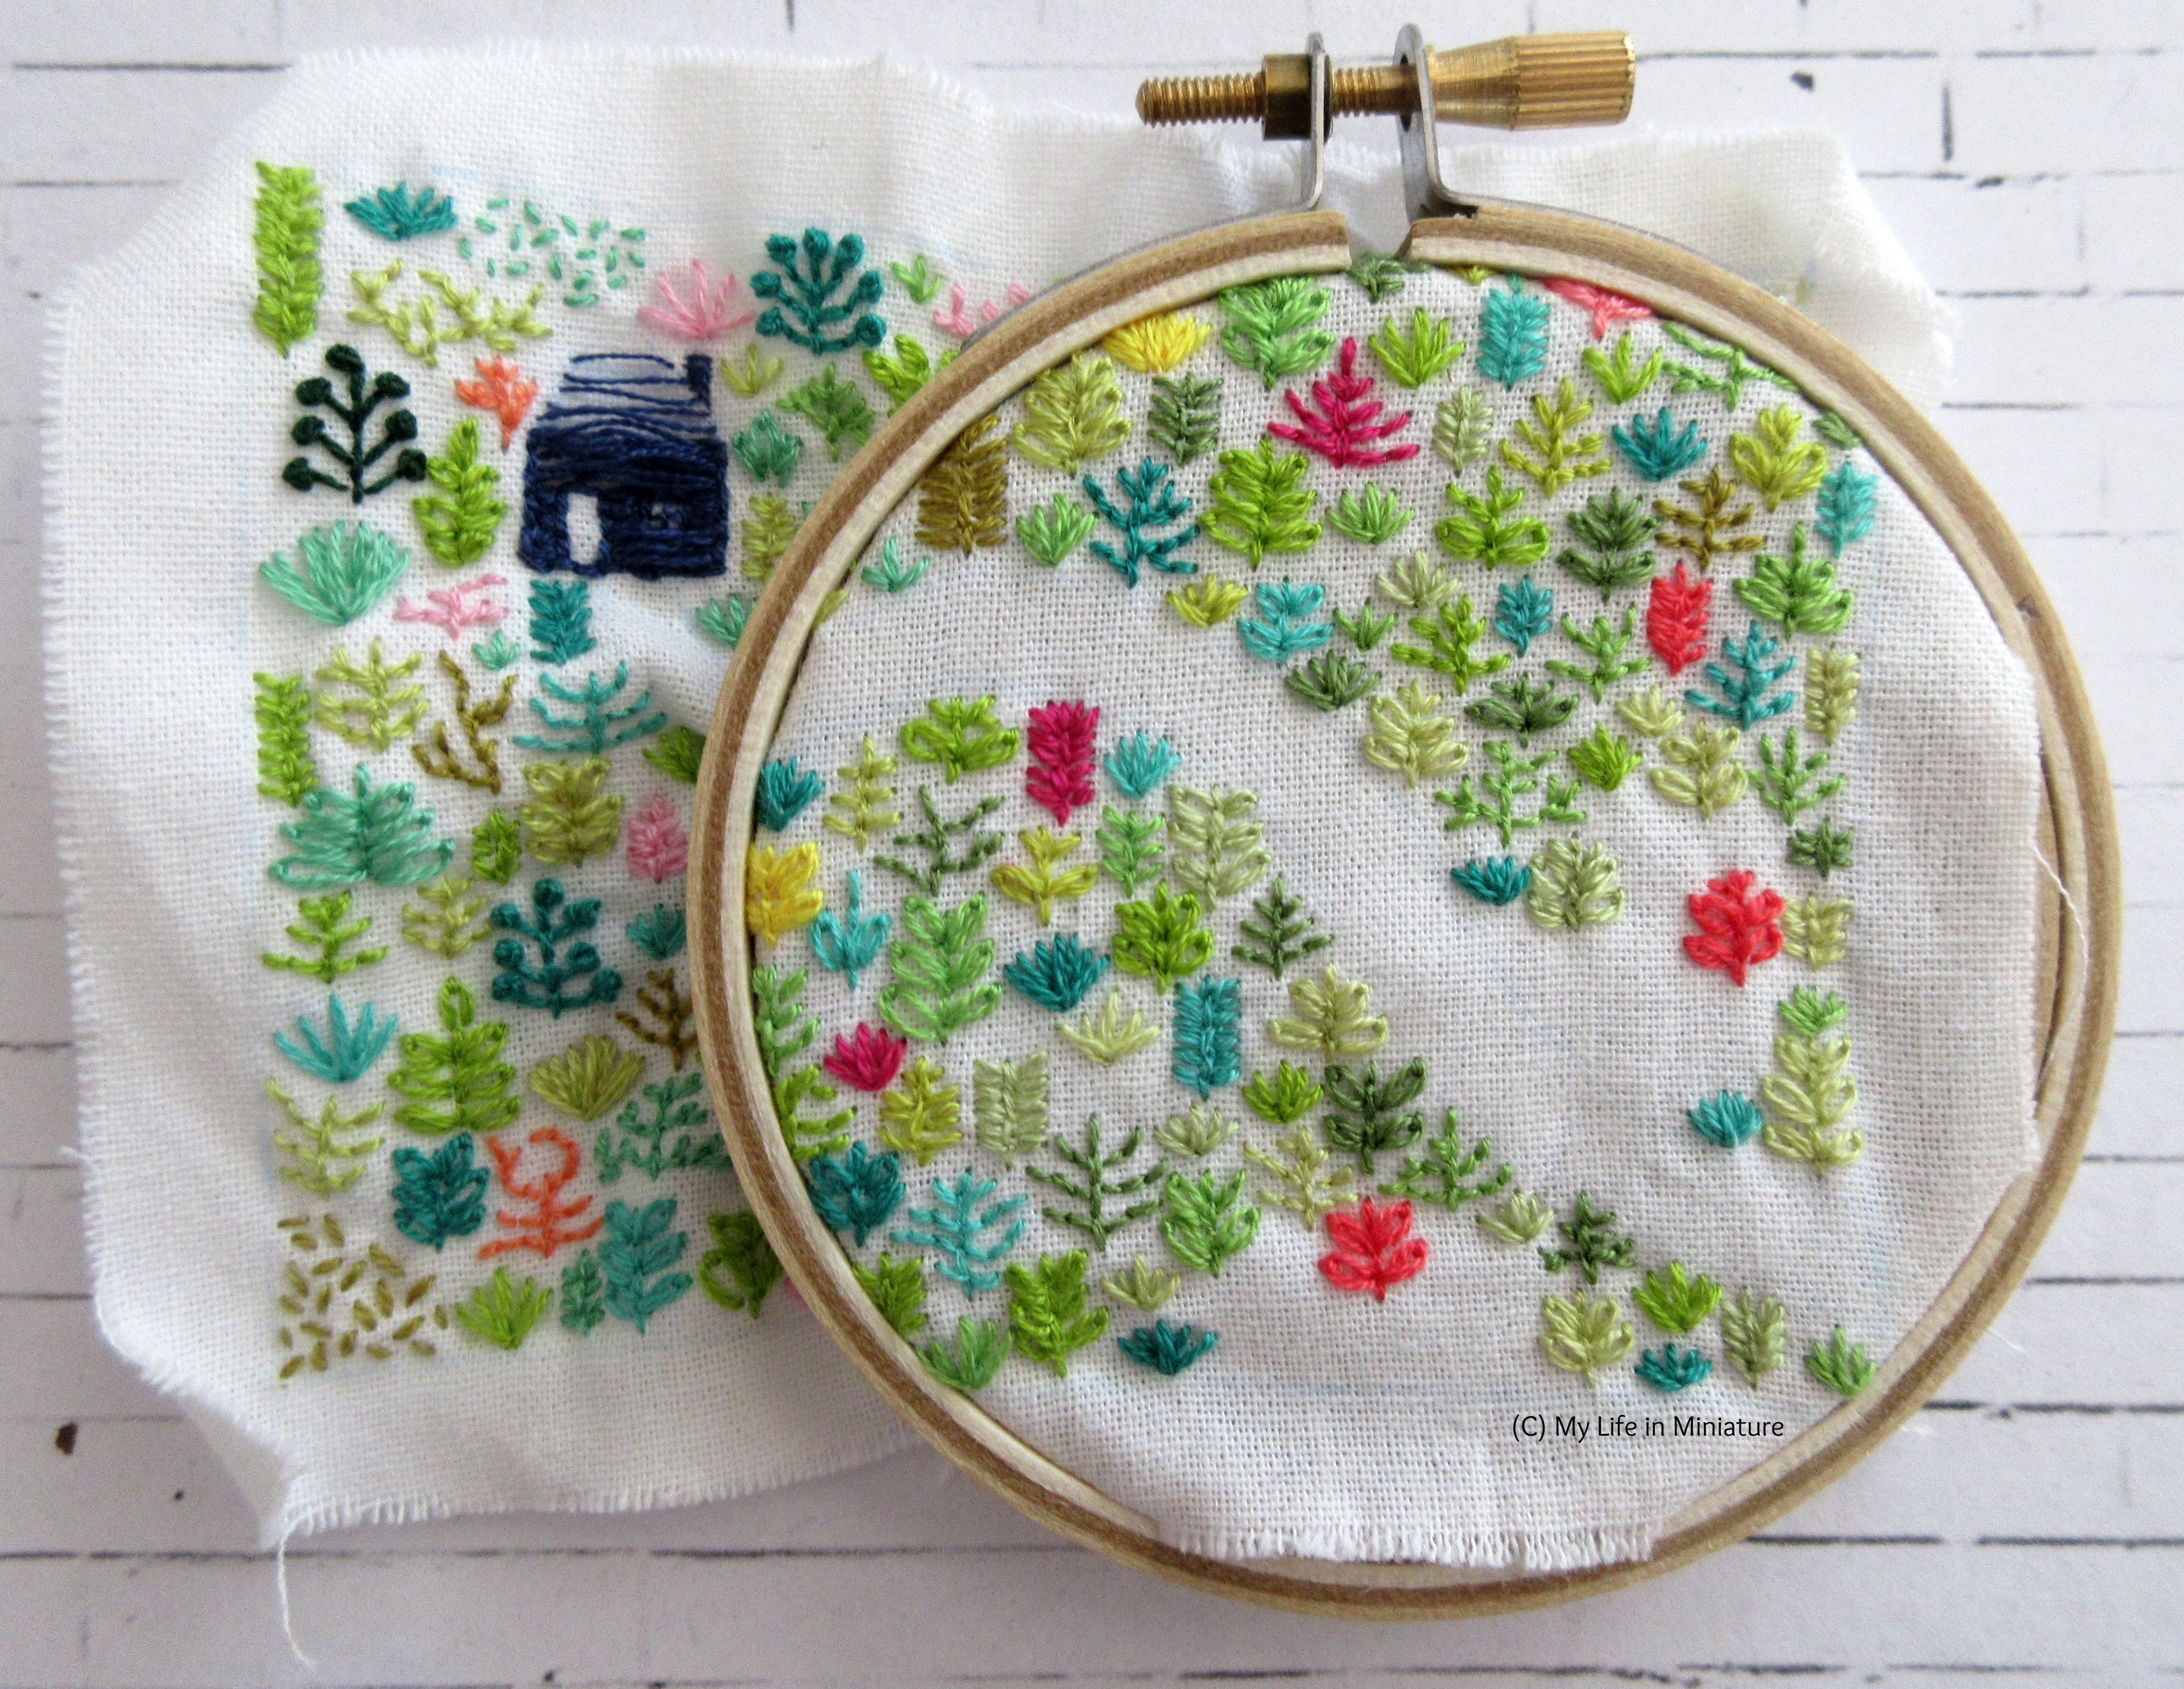 White fabric is in an embroidery hoop. Stitched on it is a small navy blue house, and an assortment of plants in different colours. The hoop is in the top-right of the fabric, and is nearly full of plants.